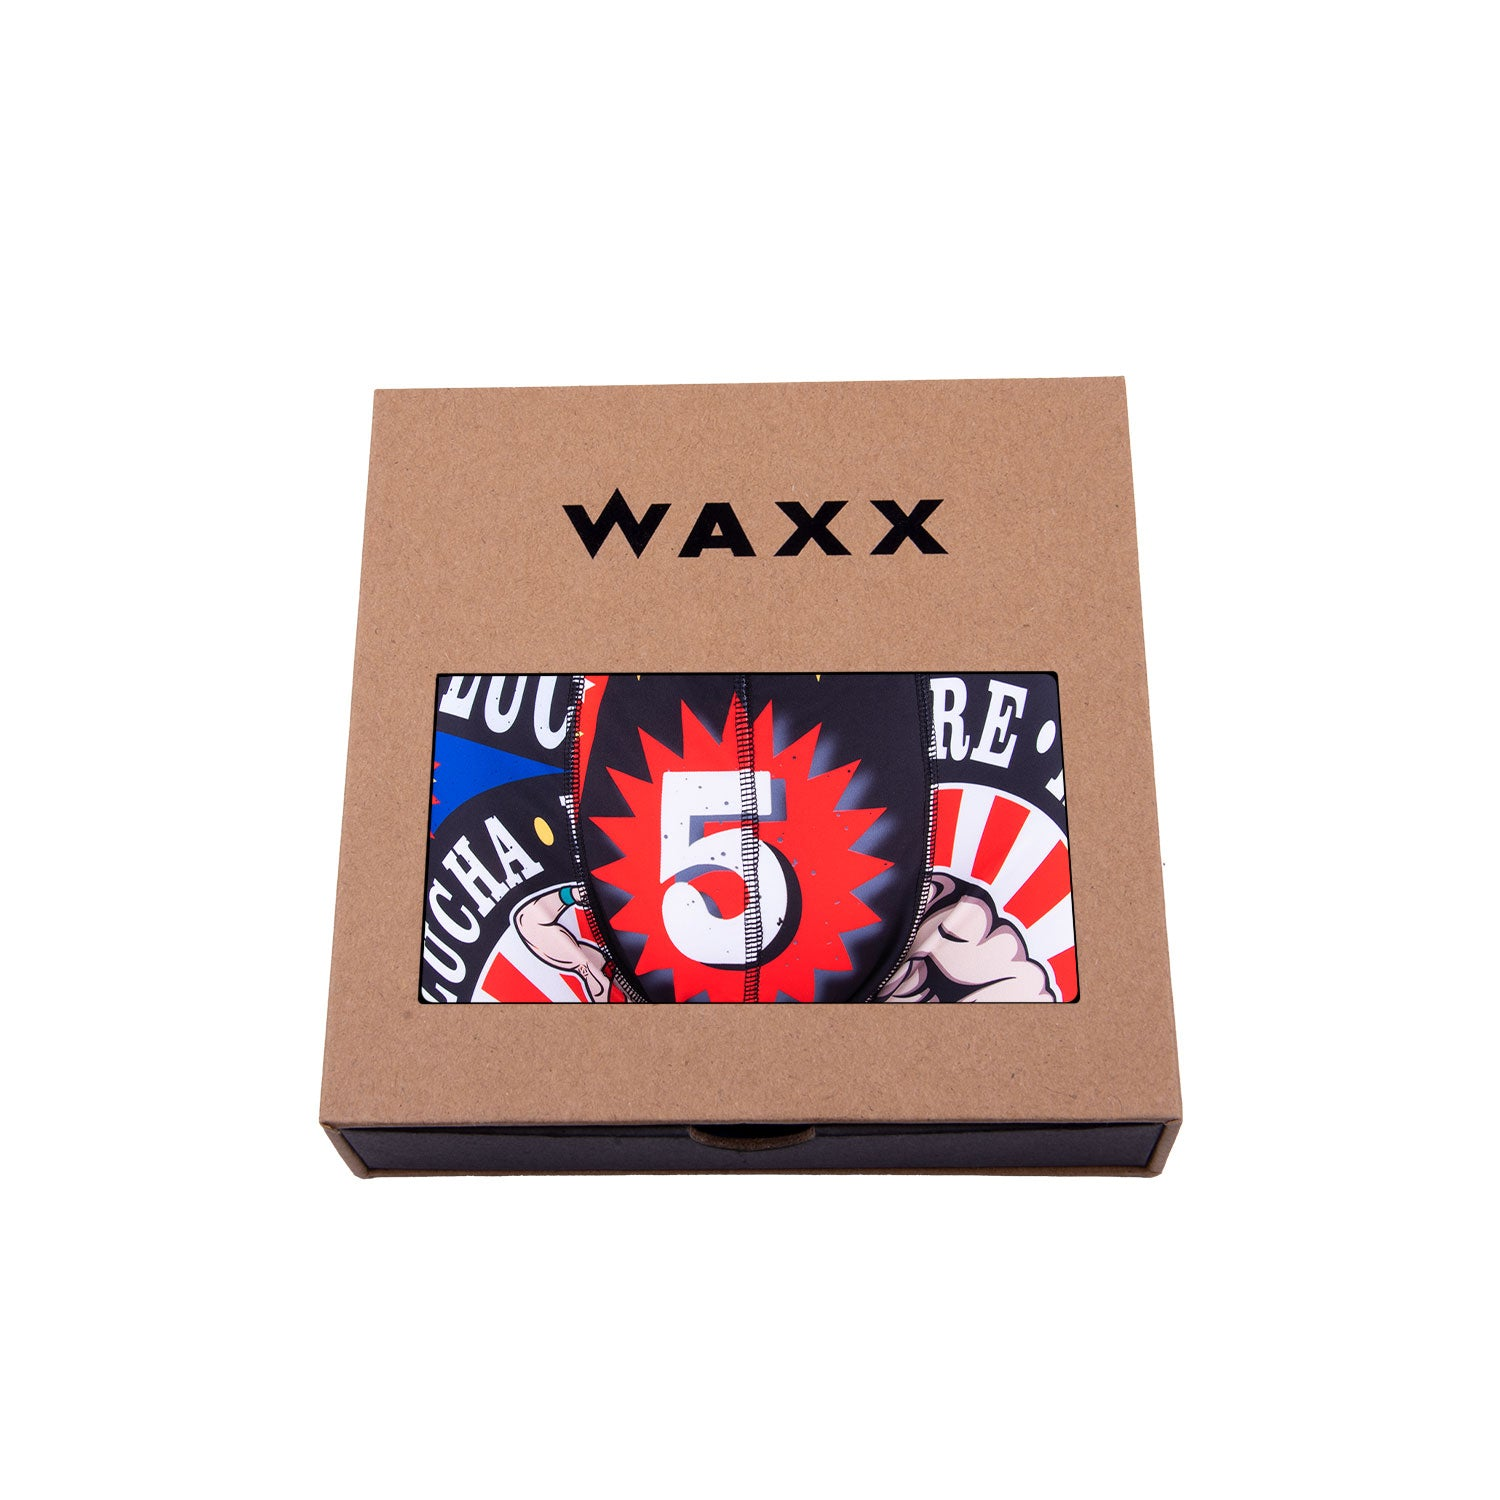 Waxx Men's Trunk Boxer Short Lucha Libre